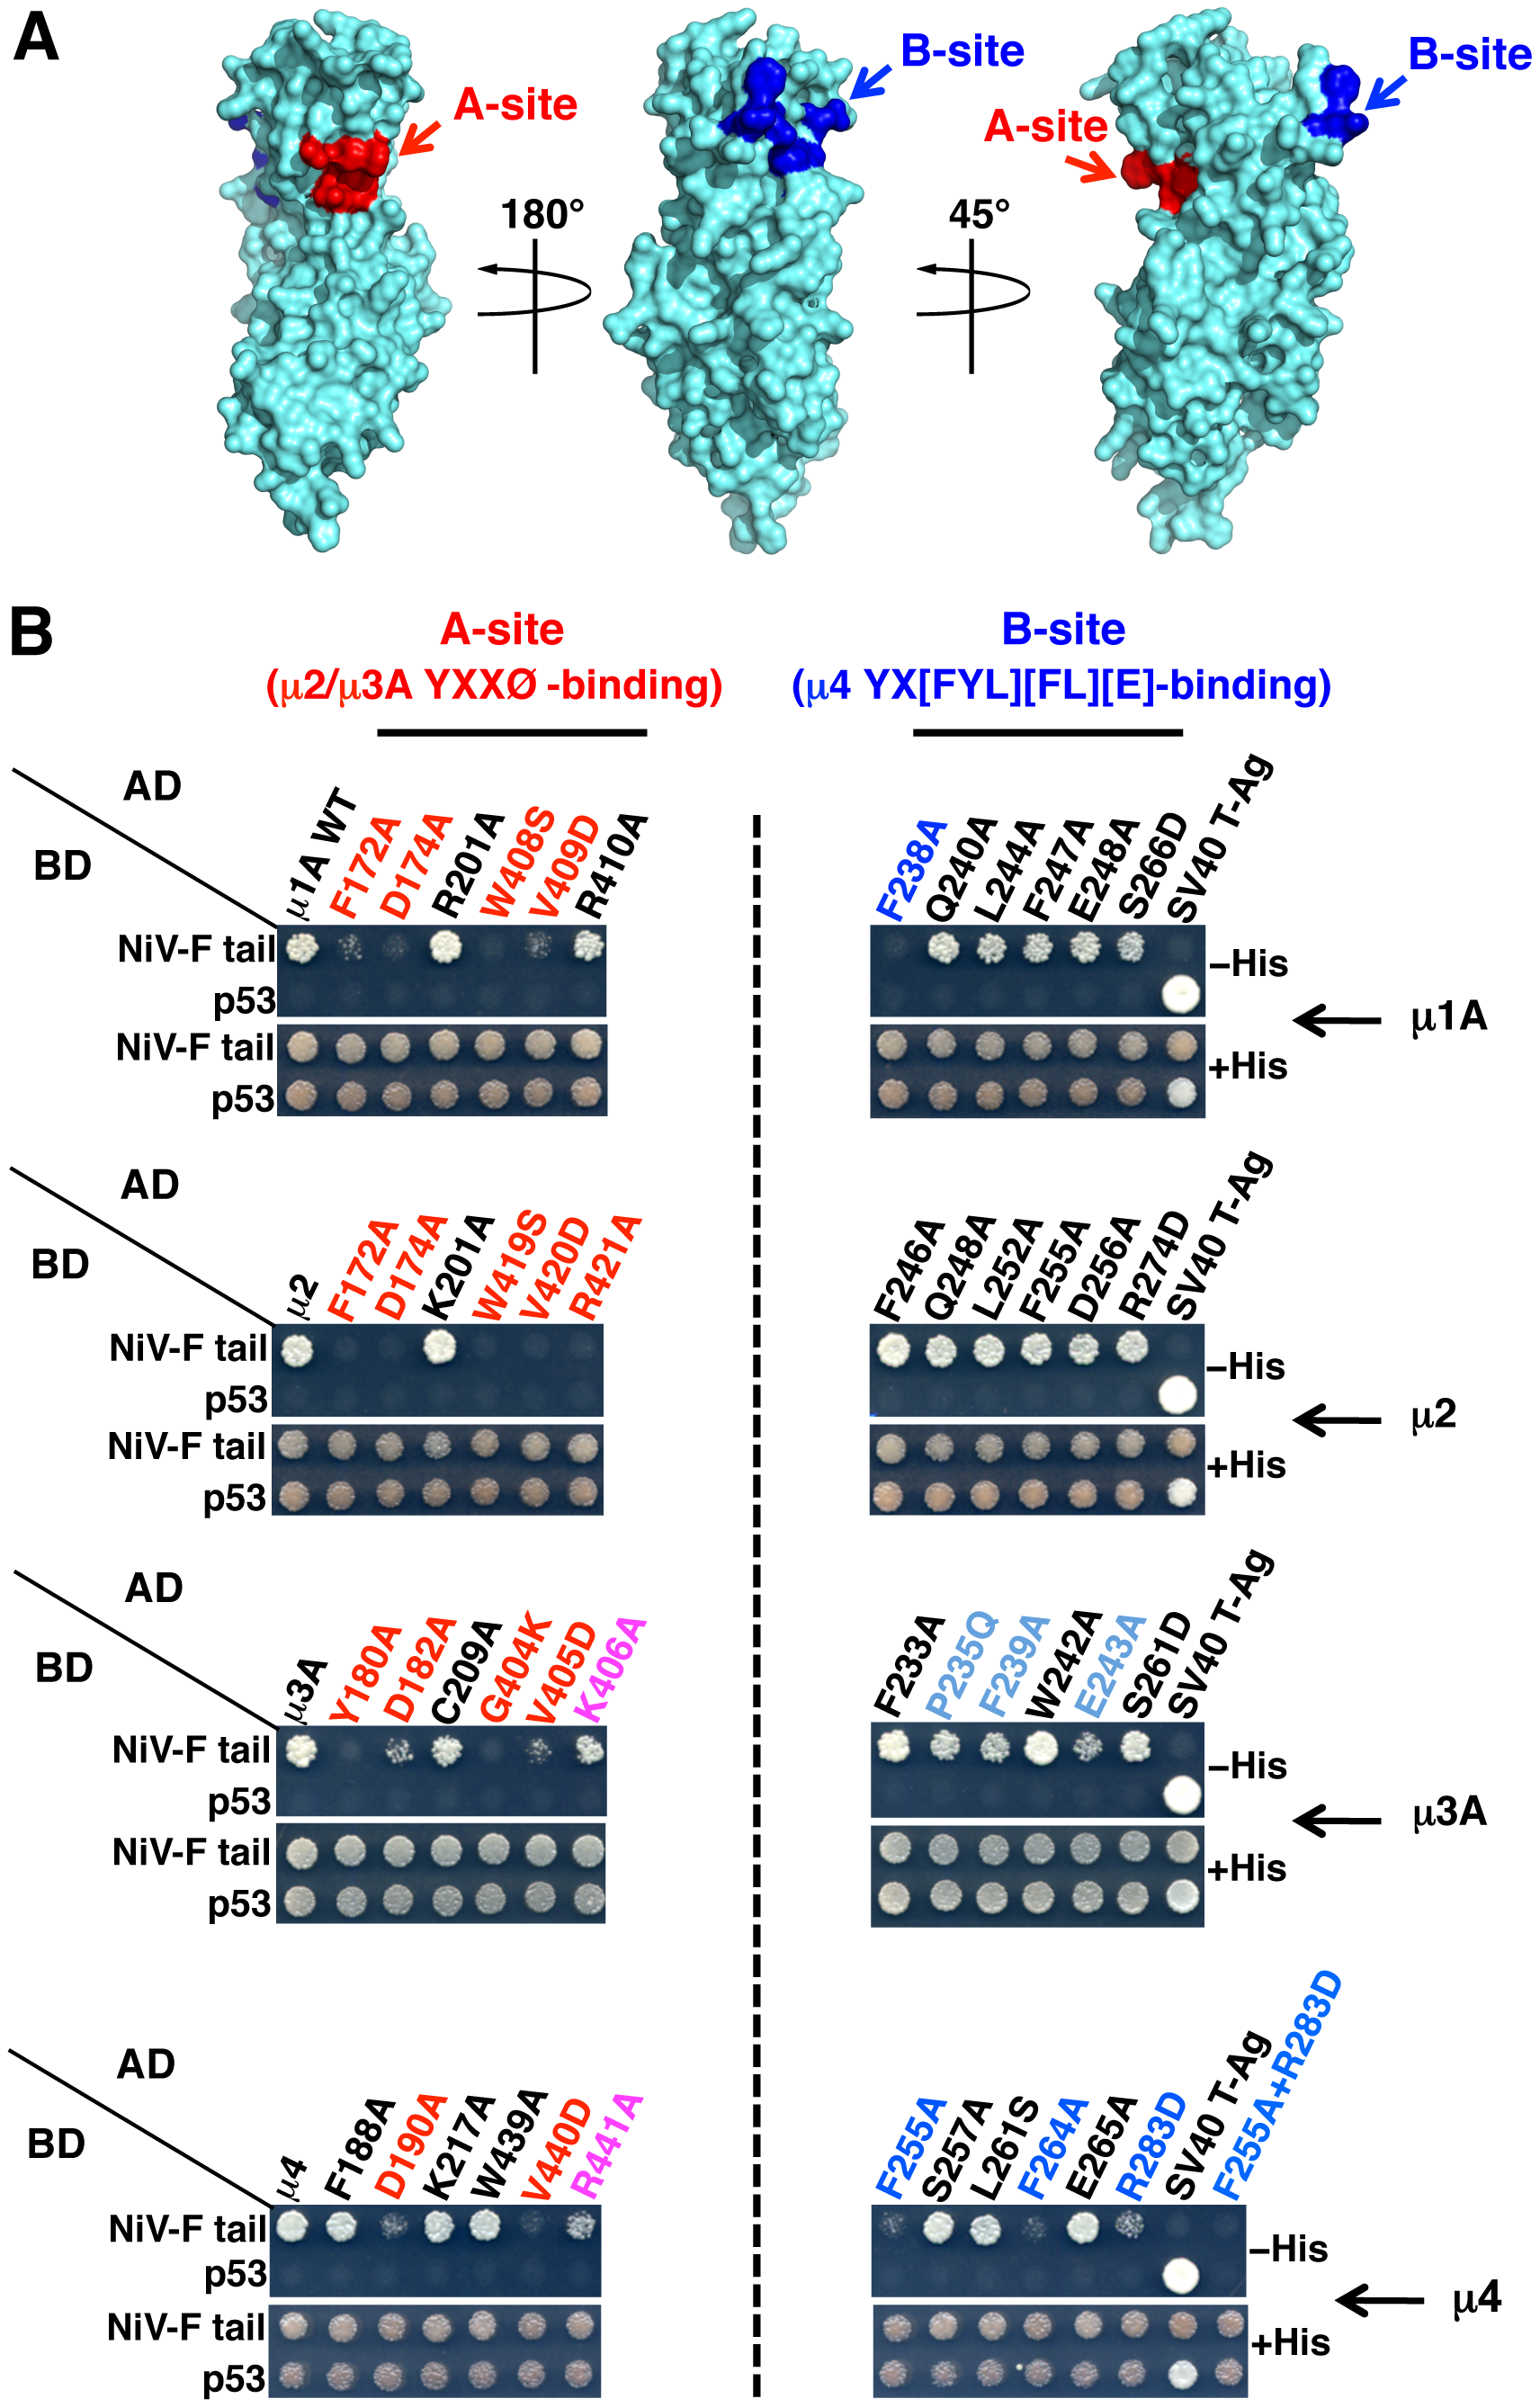 Binding sites on μ subunits involved in interactions with the NiV-F tail.